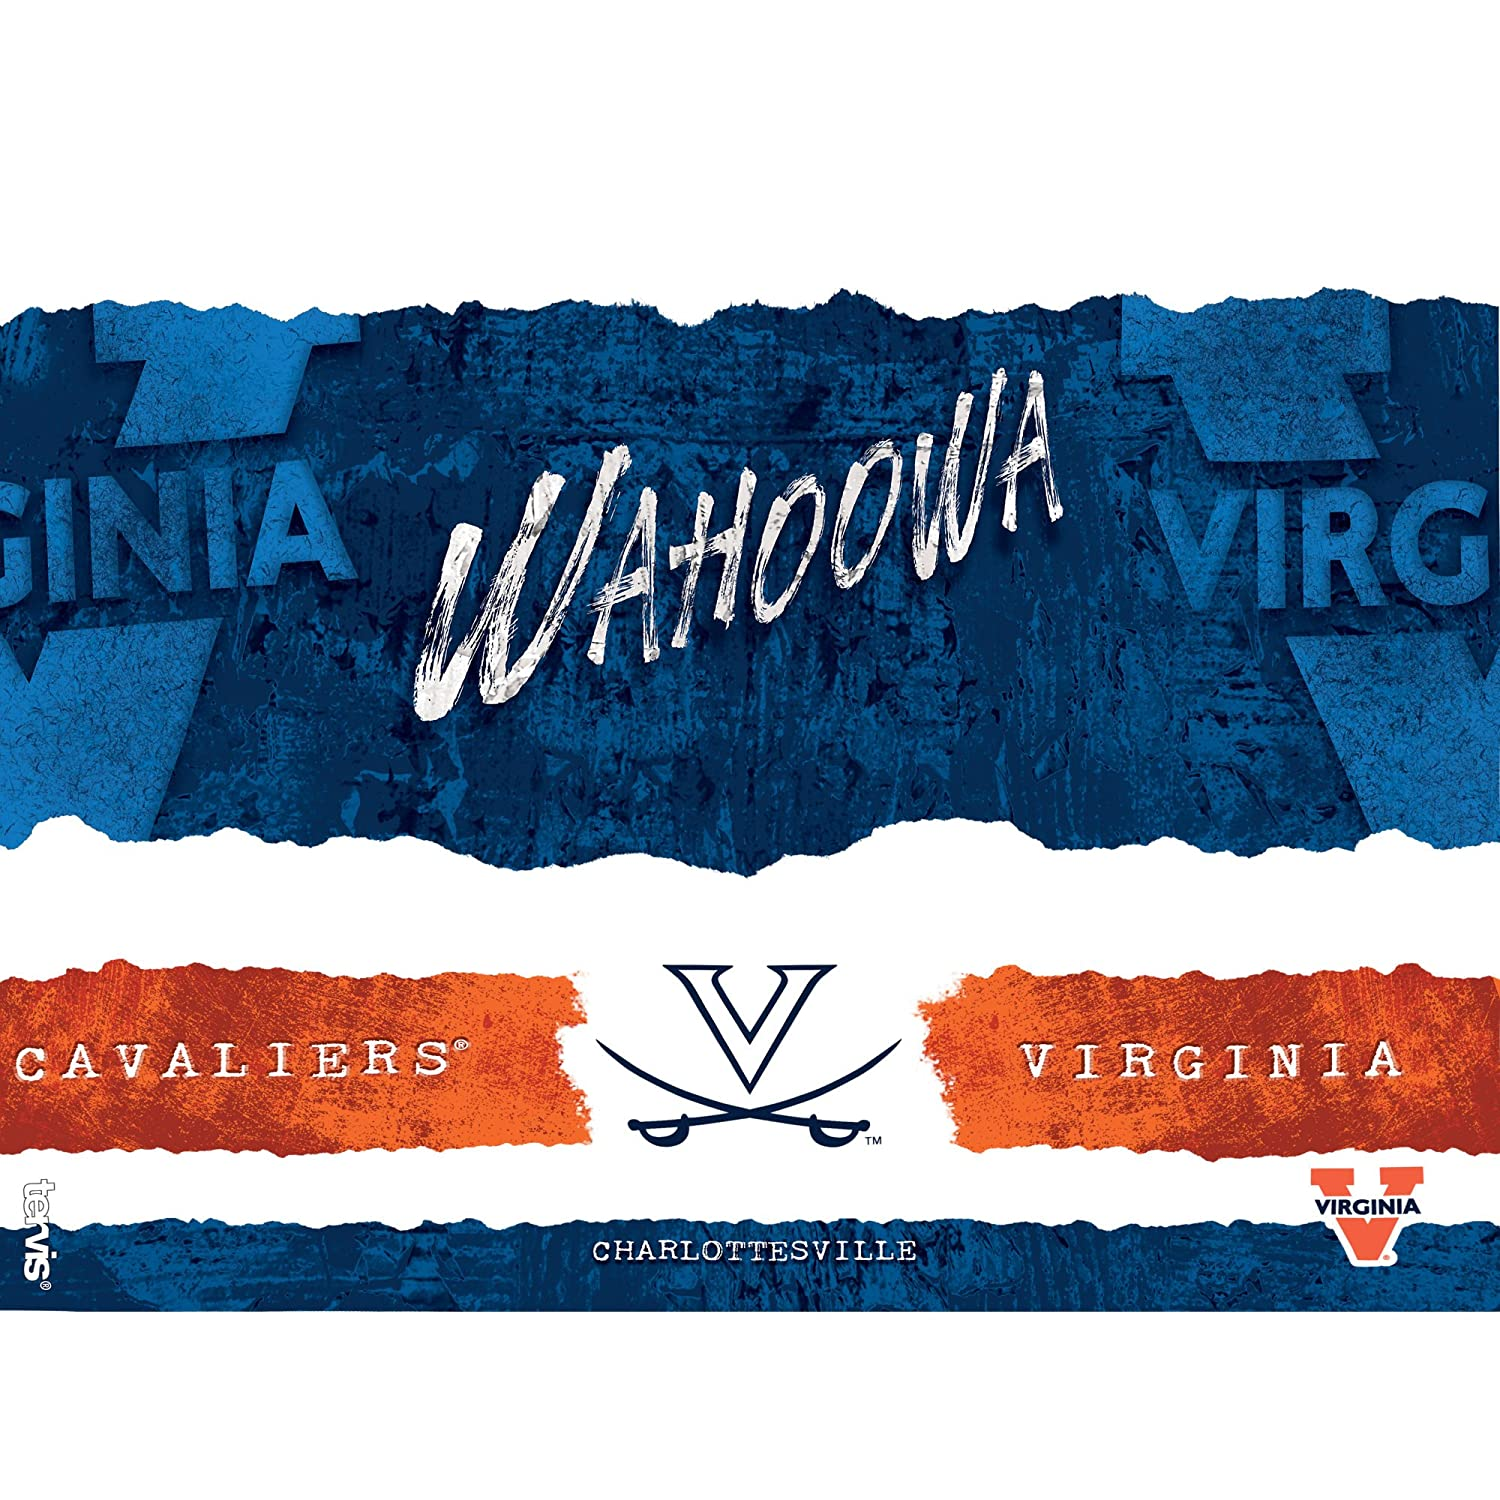 Tervis 1251553 Virginia Cavaliers College Statement Insulated Tumbler with Wrap and Orange Lid 16oz Clear